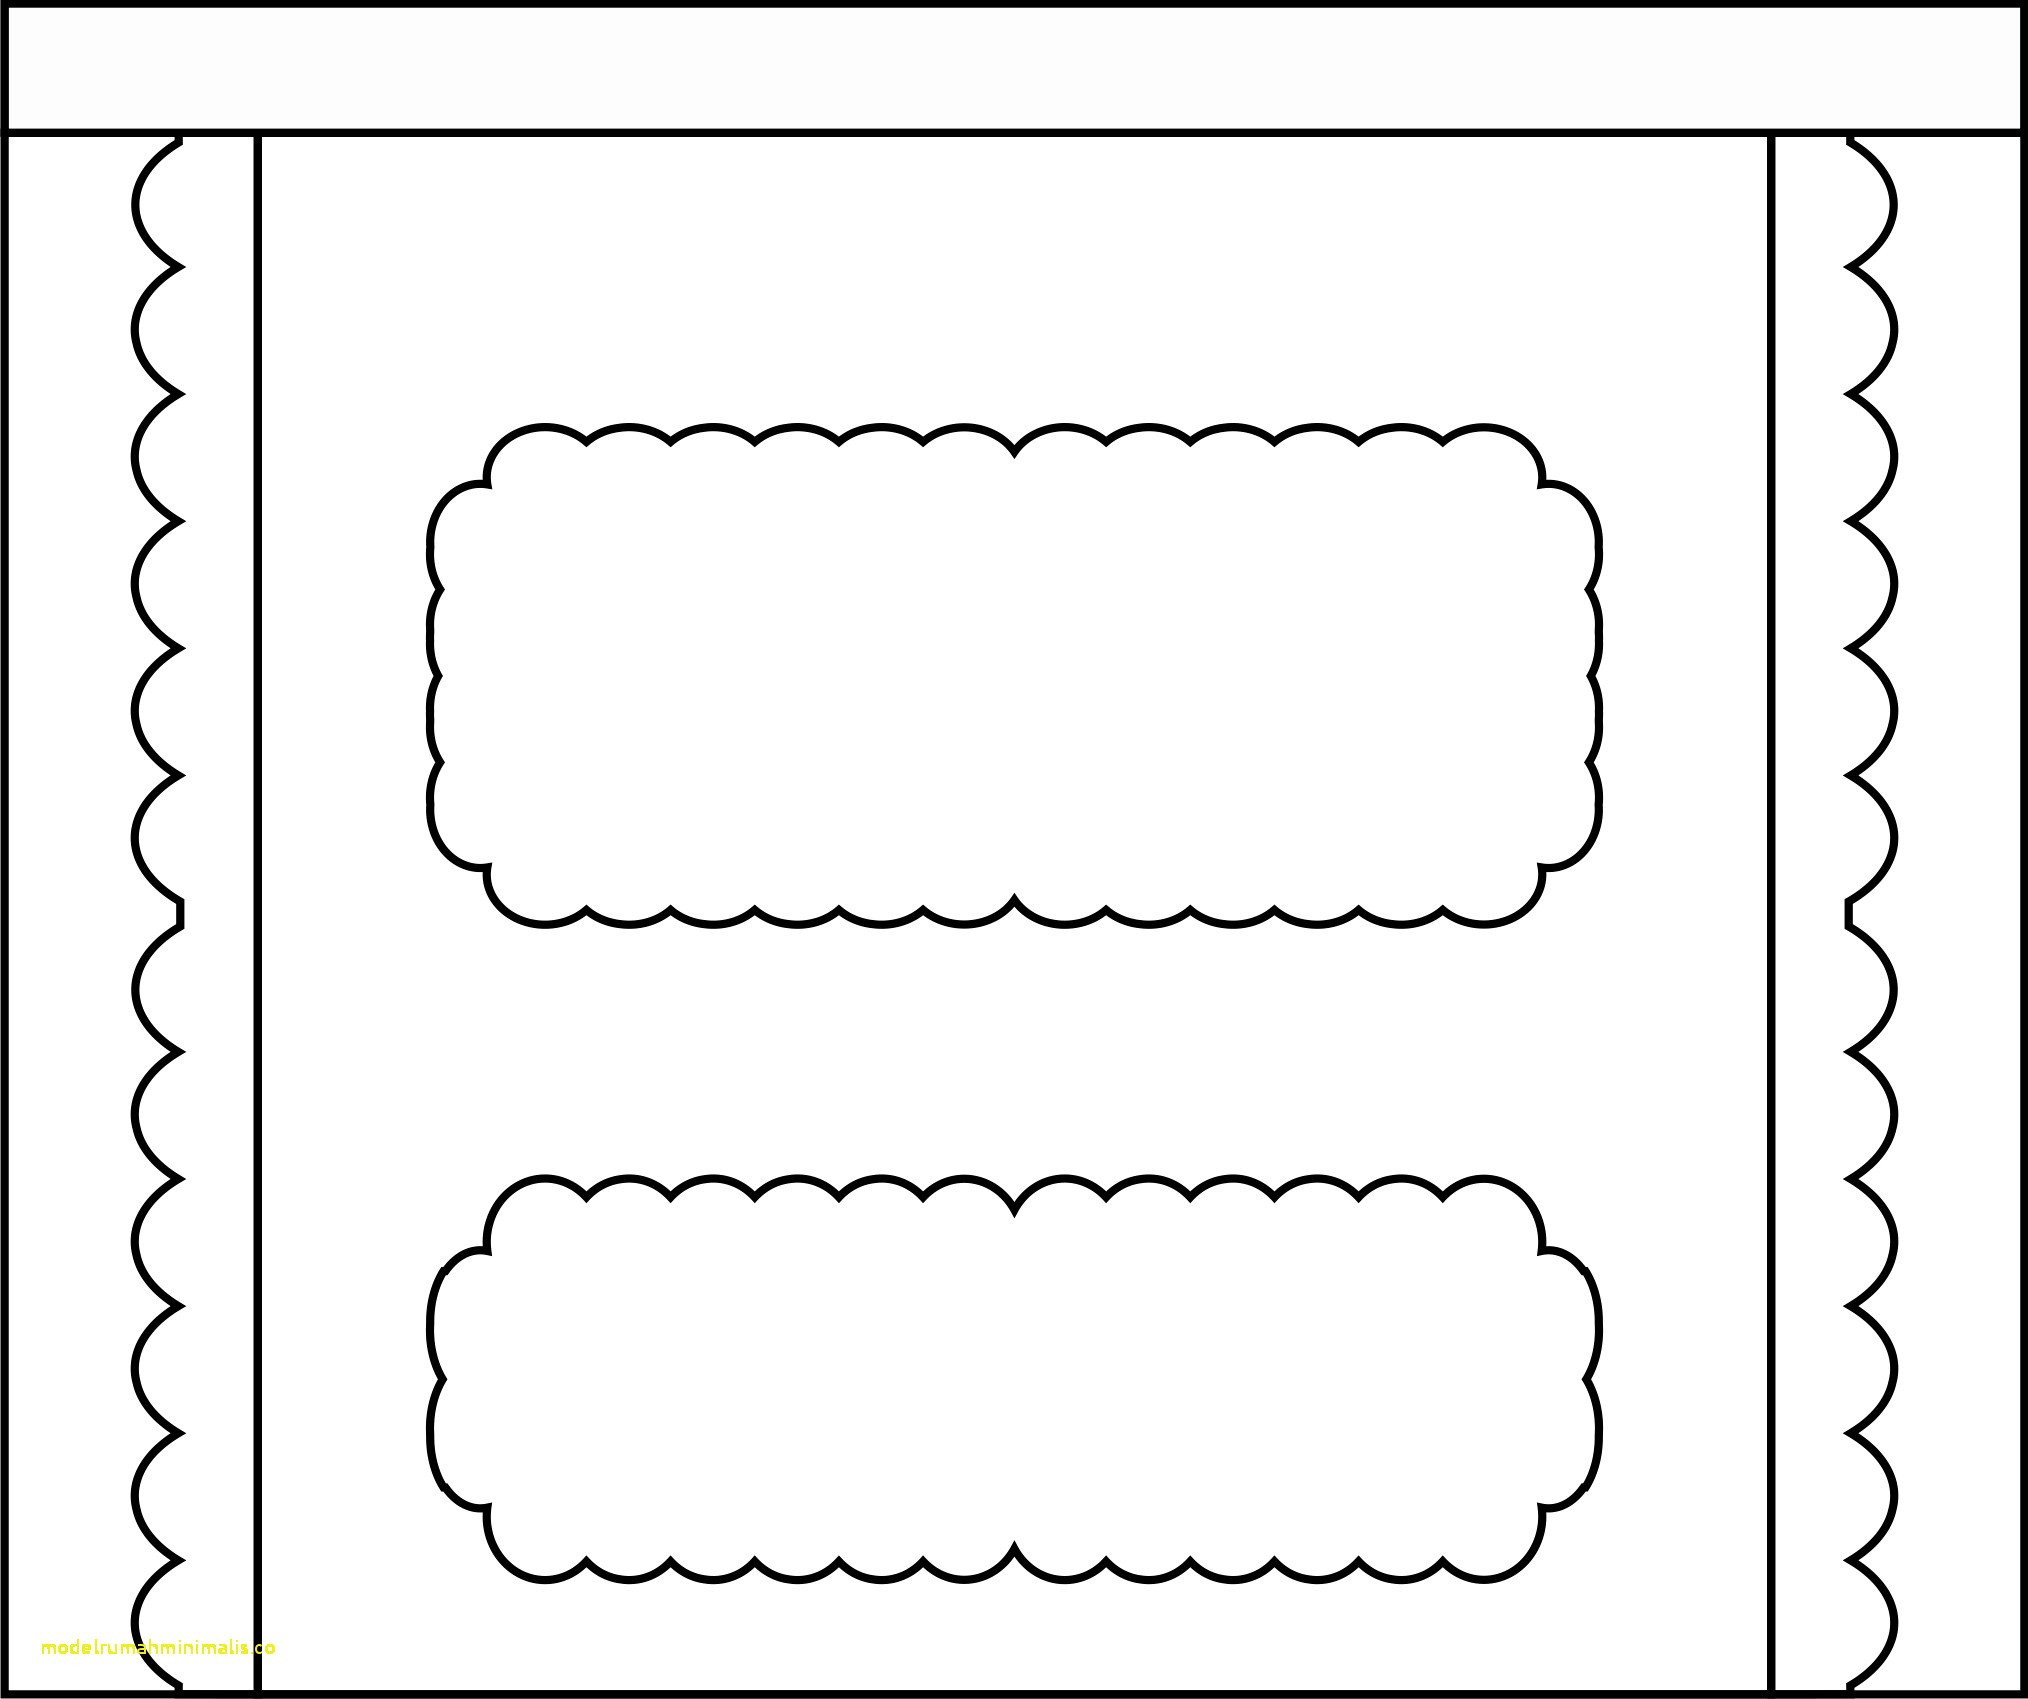 022 Template Ideas Free Candy Bar Wrapper Printable Wrappers - Free Printable Candy Bar Wrappers Templates